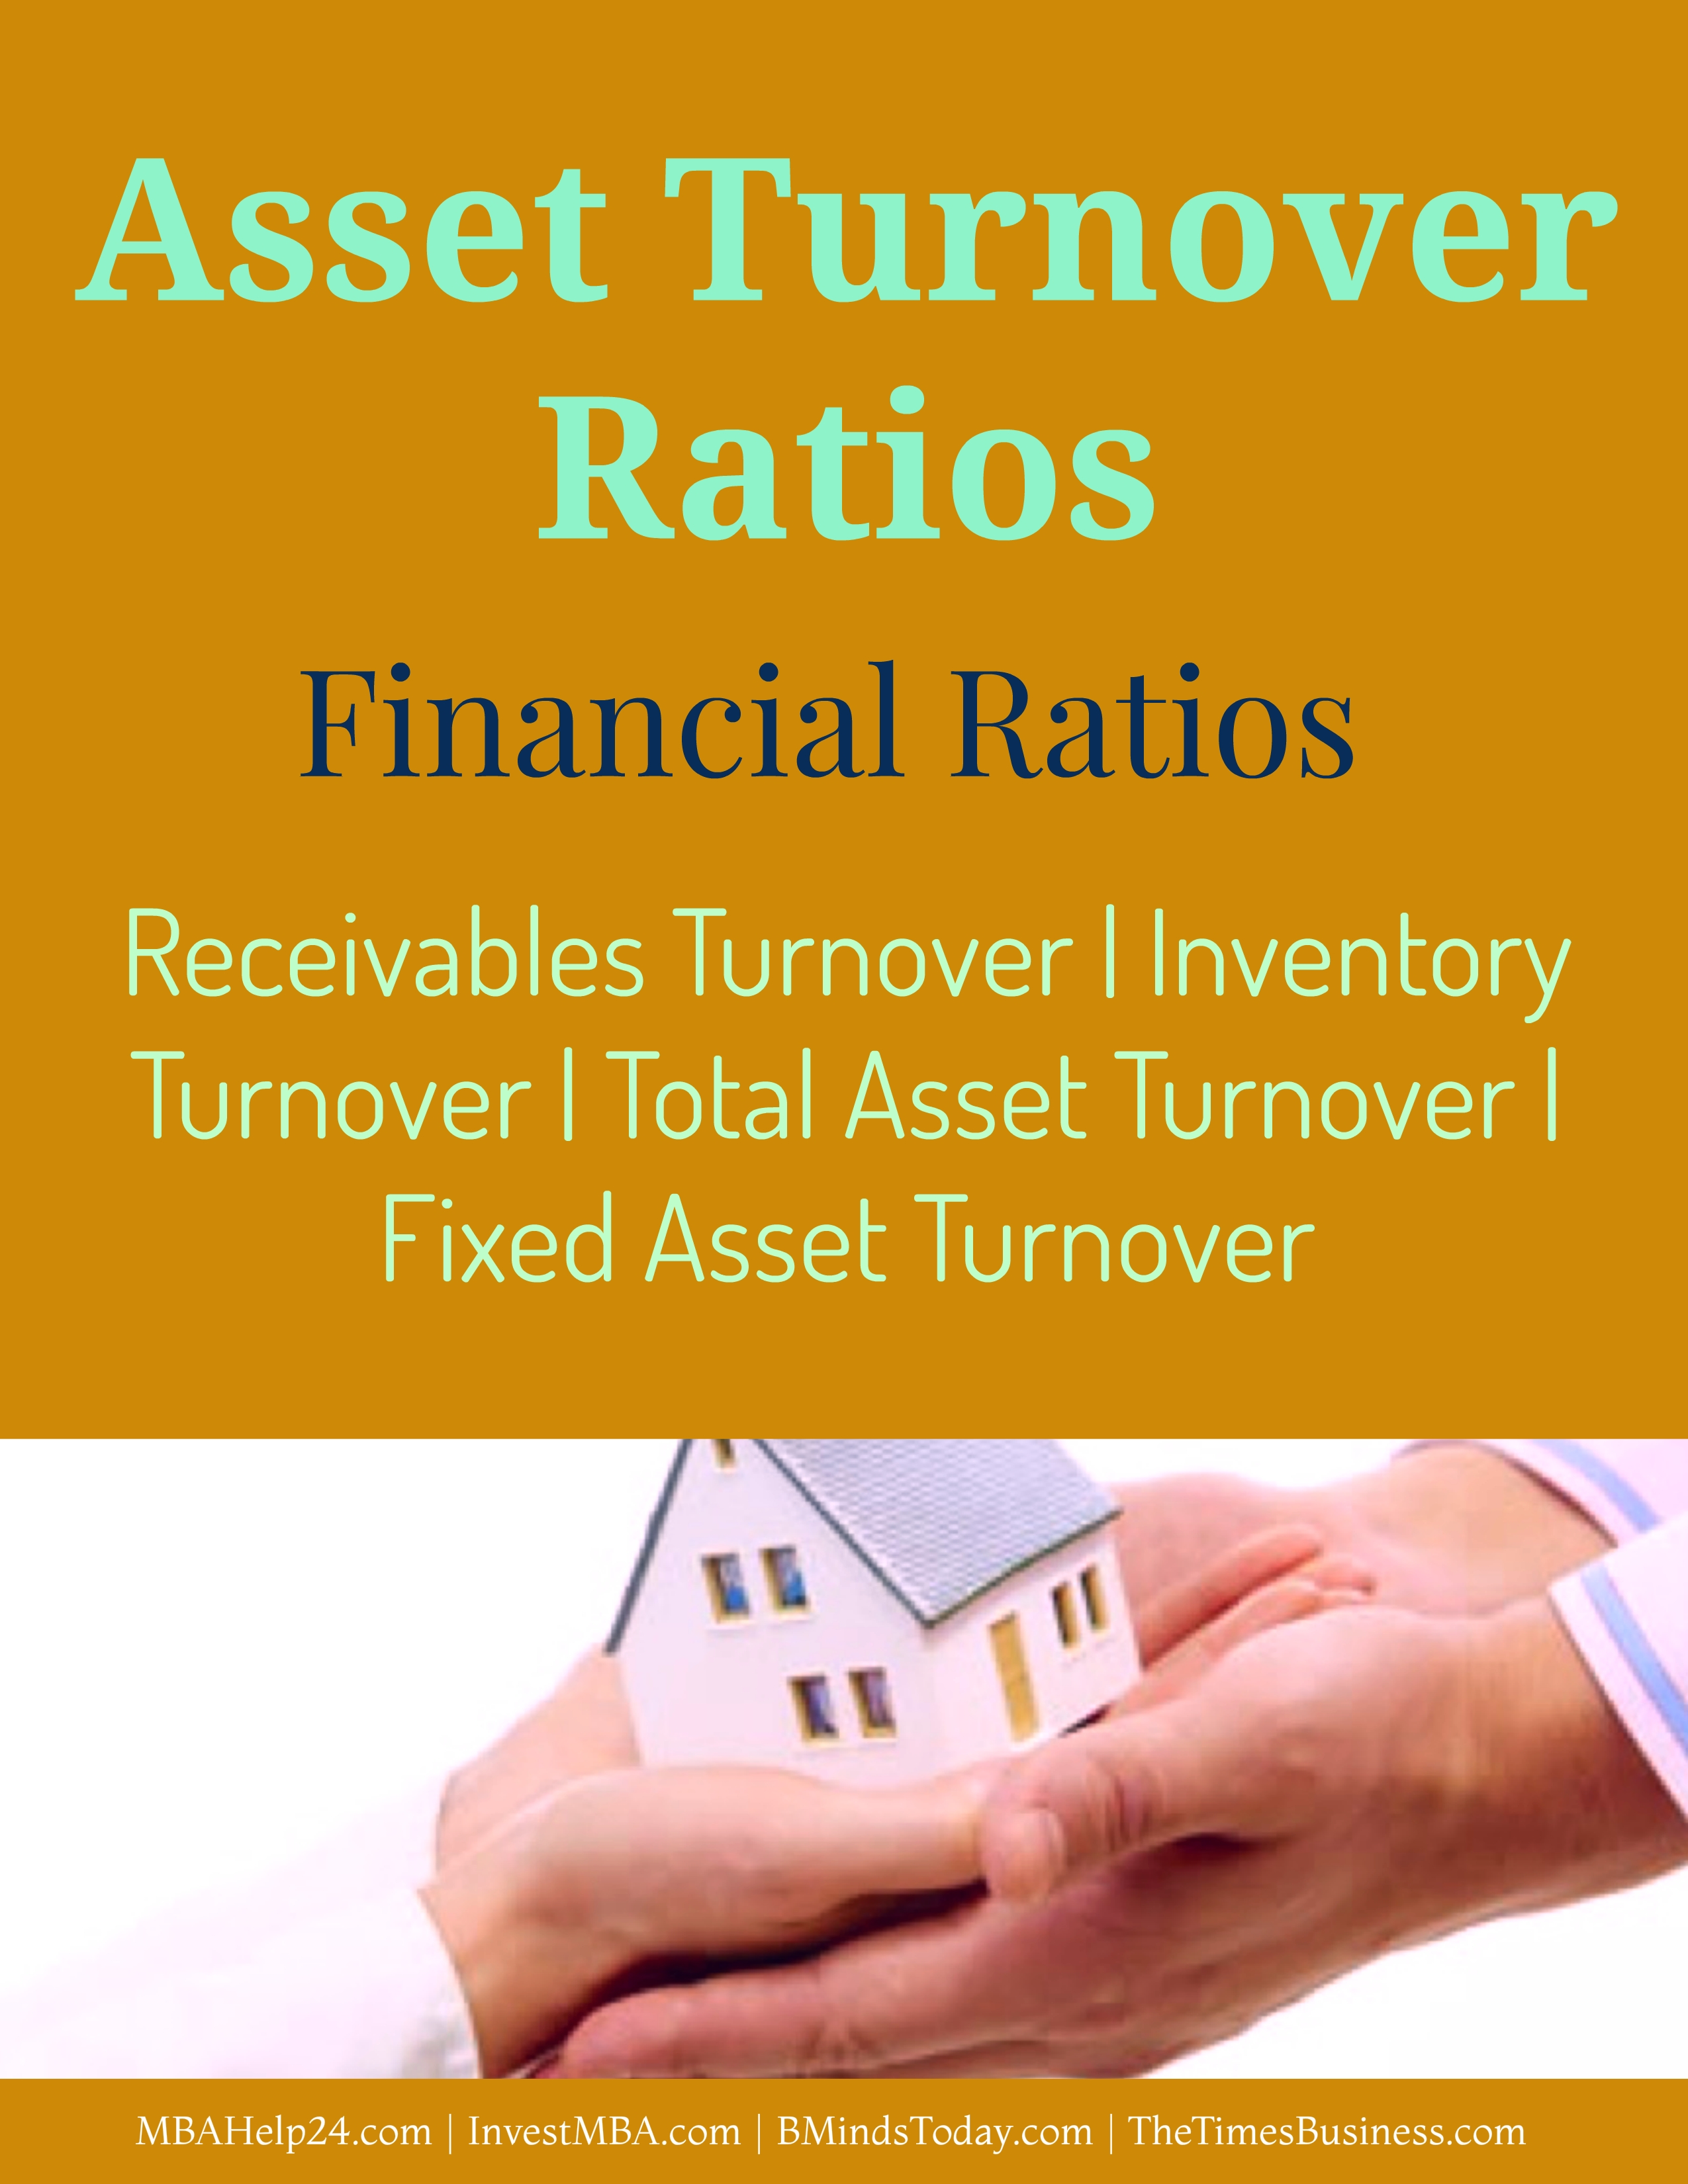 Asset Turnover Ratios- Receivables, Inventory, Total Asset and Fixed Asset Asset Turnover Ratios Asset Turnover Ratios | Receivables | Inventory | Total Asset | Fixed Asset Asset Turnover Ratios Receivables Inventory Total Asset and Fixed Asset